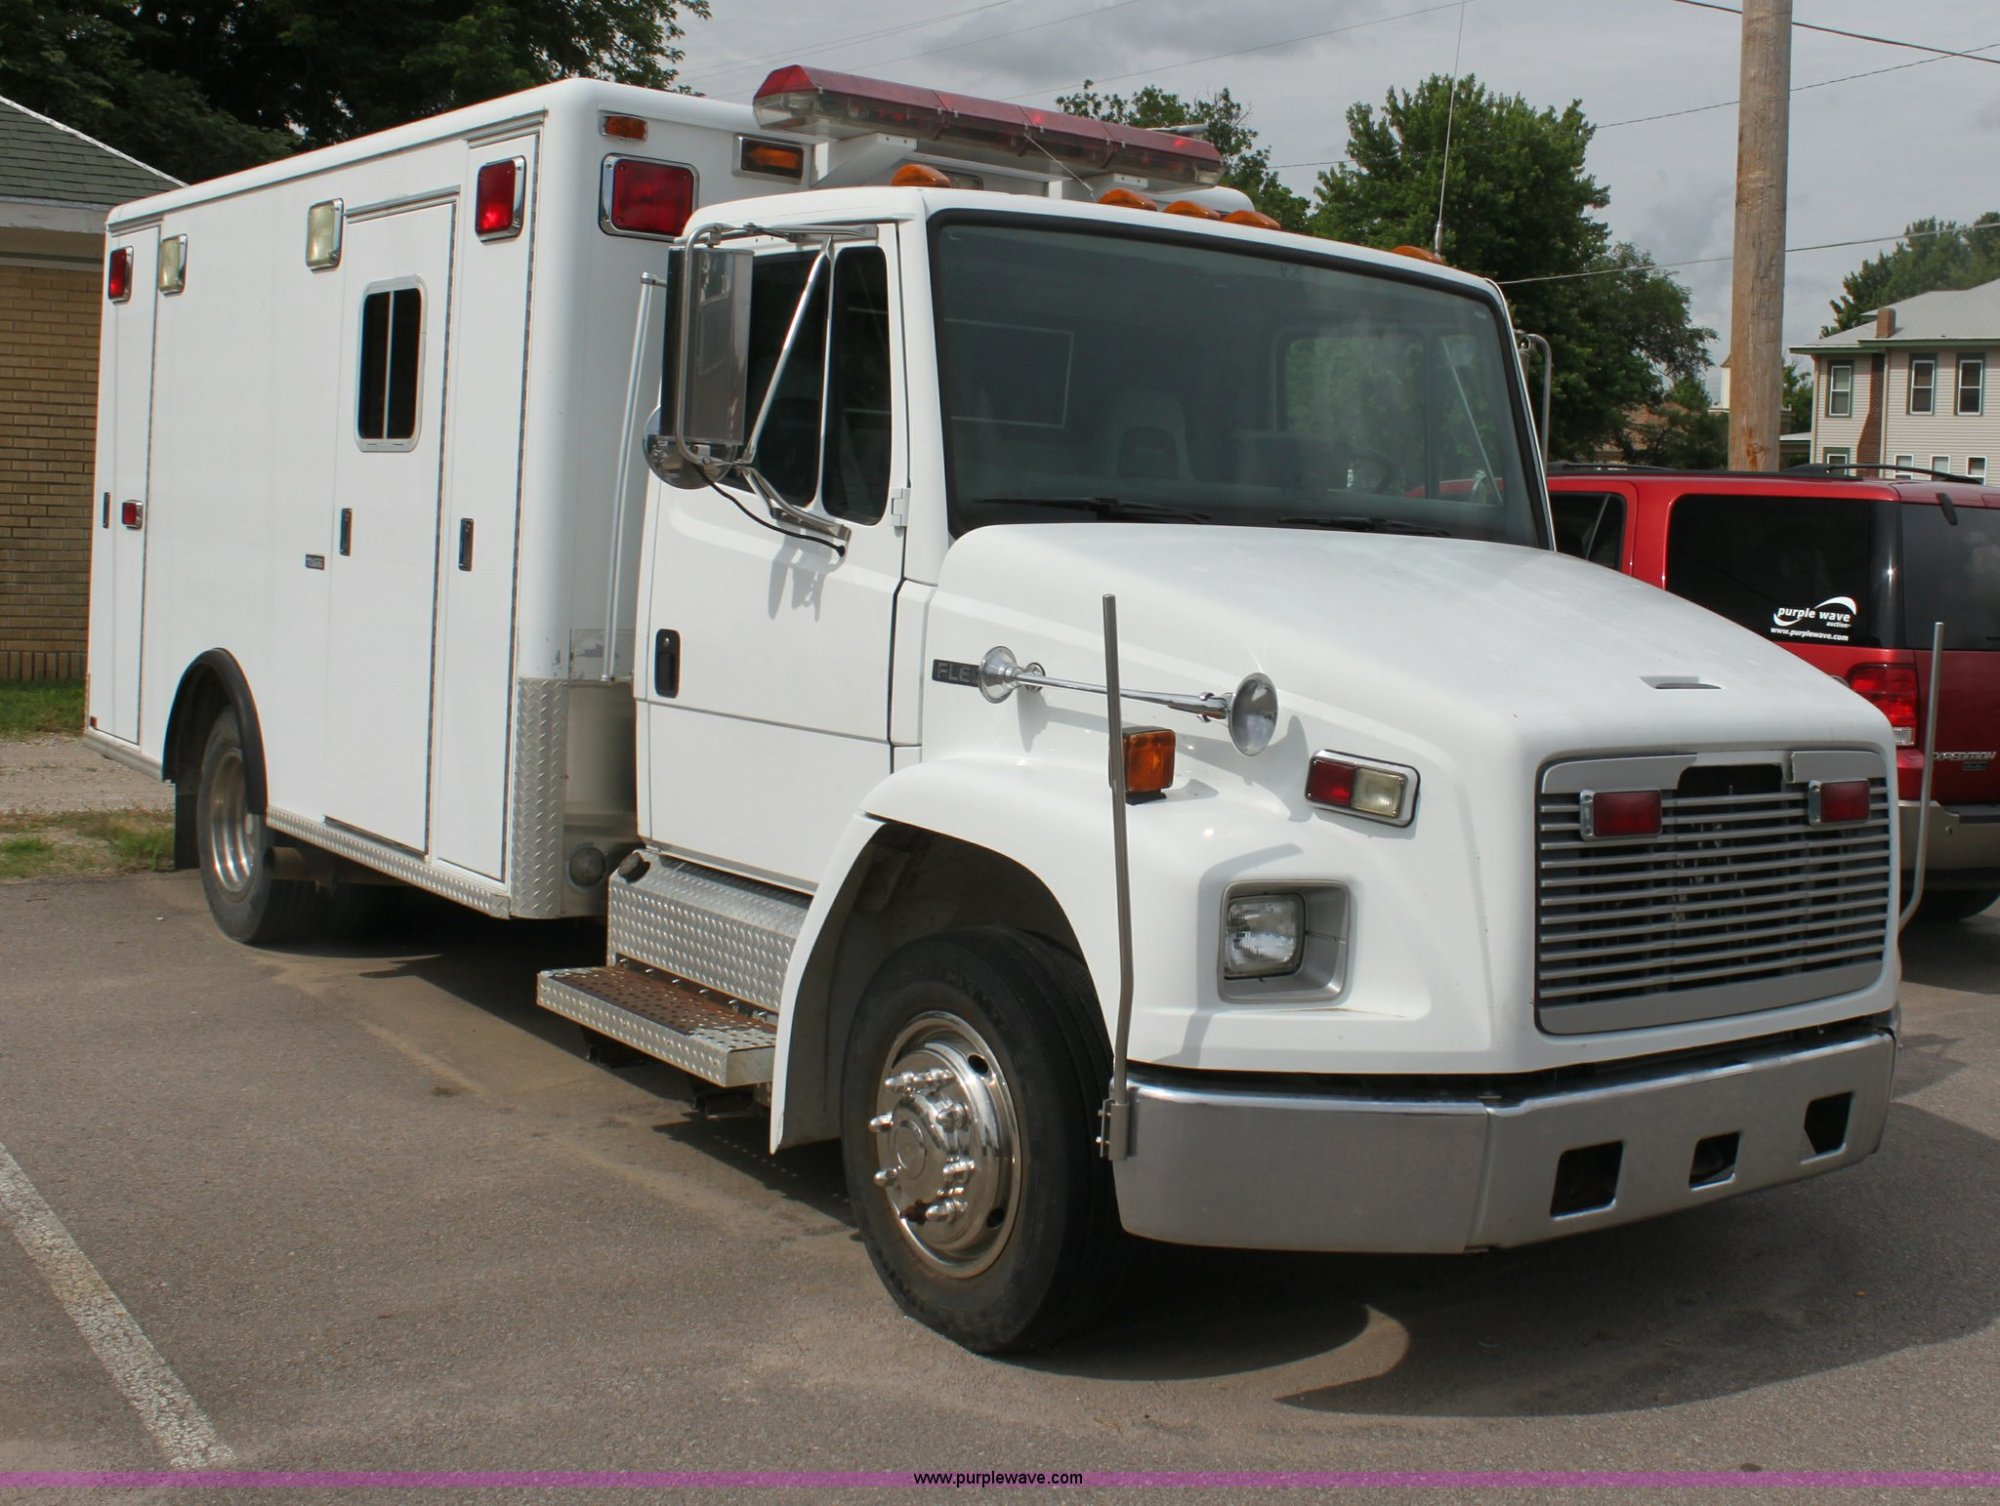 hight resolution of h7456 image for item h7456 1996 freightliner fl60 emergency vehicle